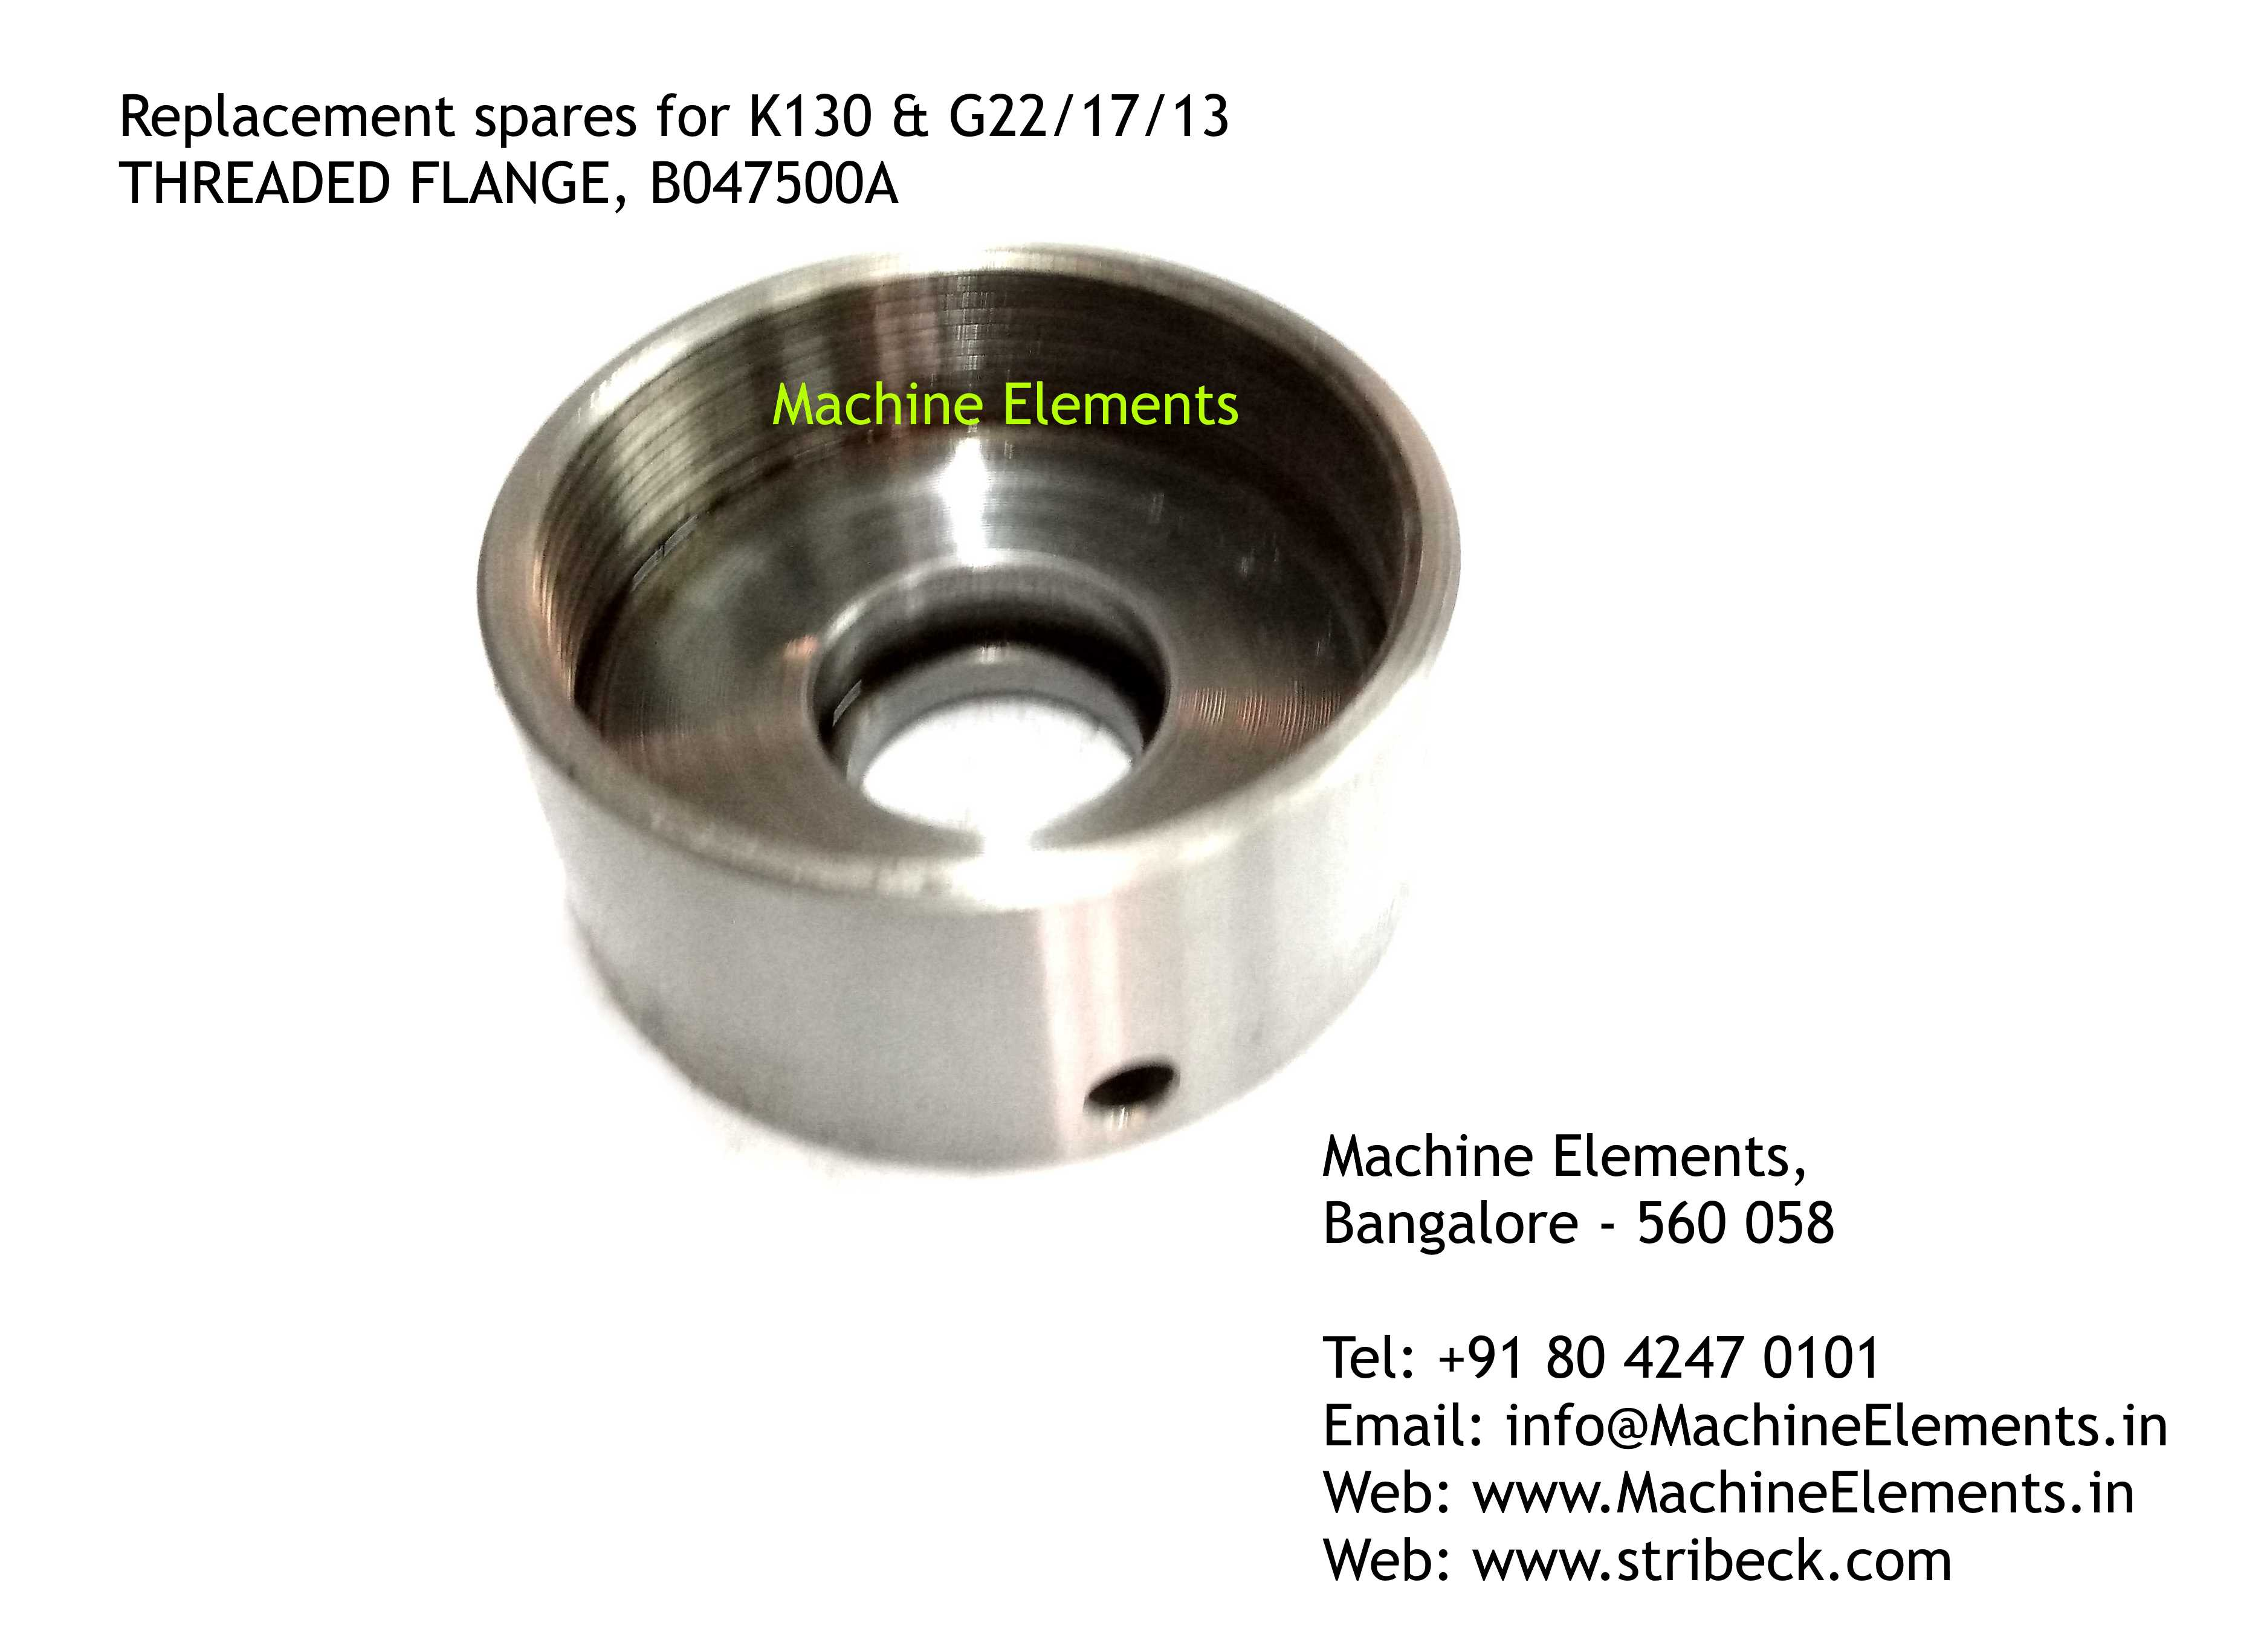 THREADED FLANGE, B047500A